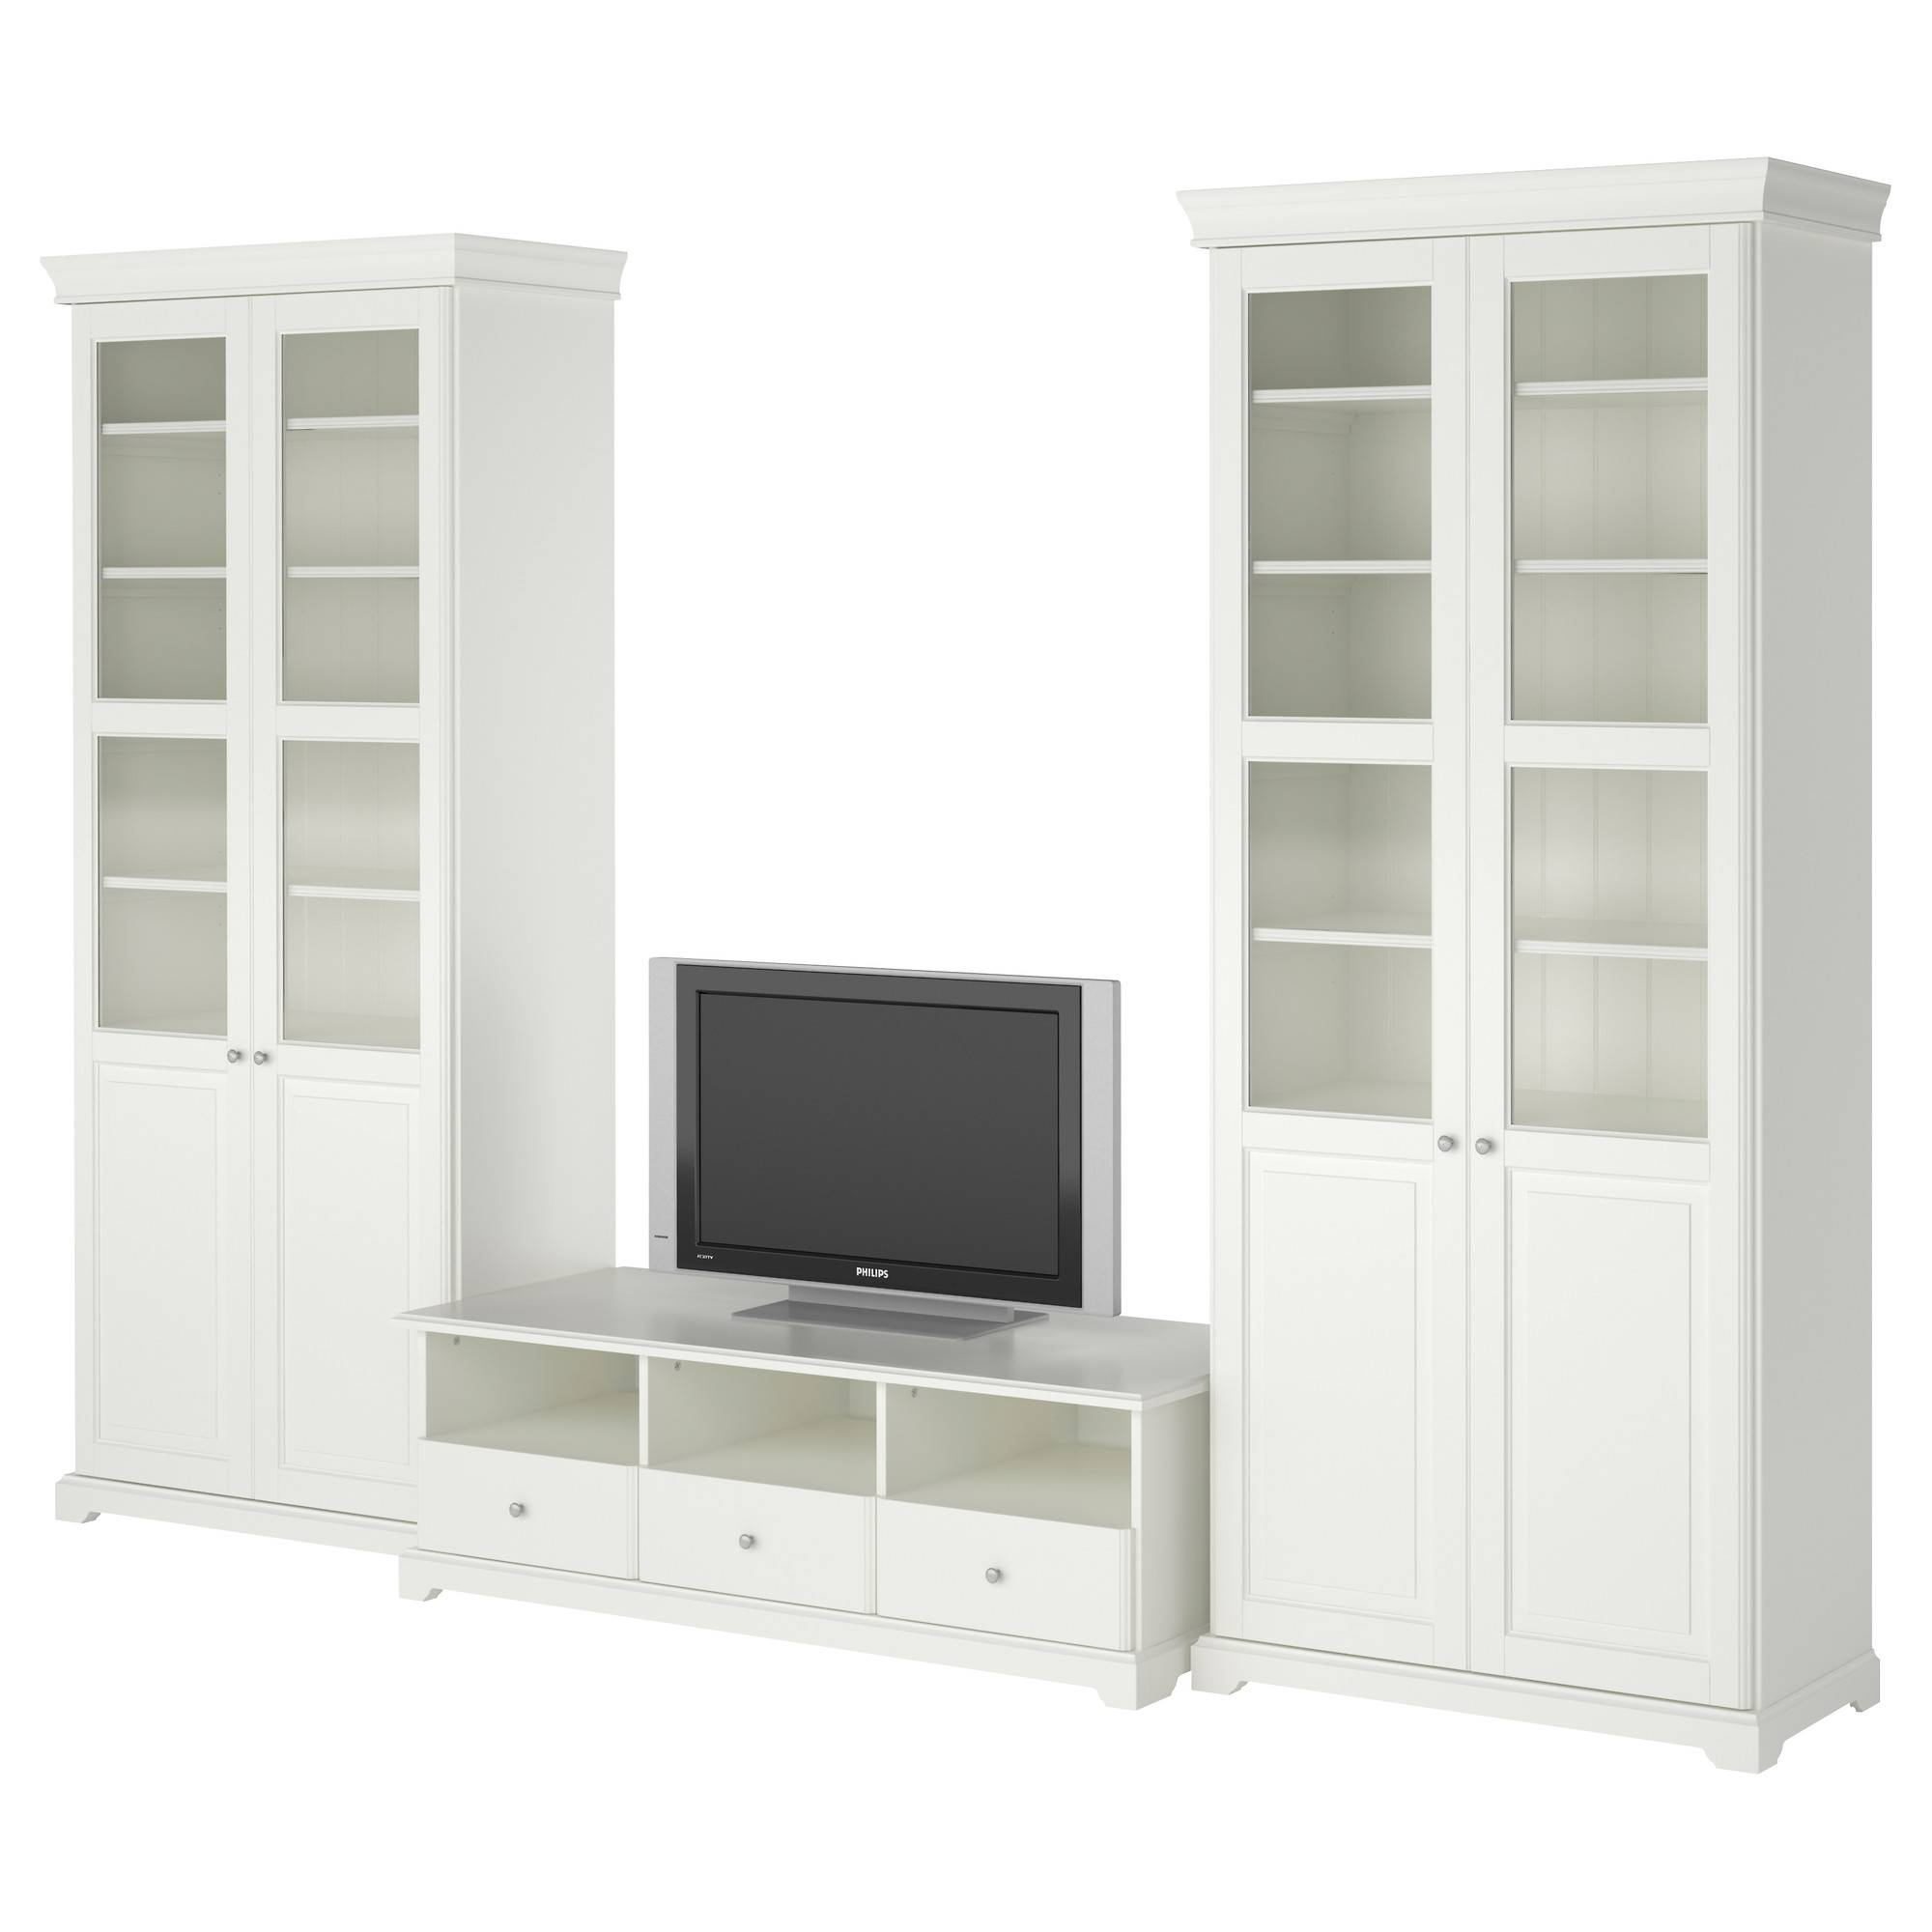 Liatorp Tv Storage Combination White 331X214 Cm - Ikea for Tv Cabinets (Image 8 of 15)